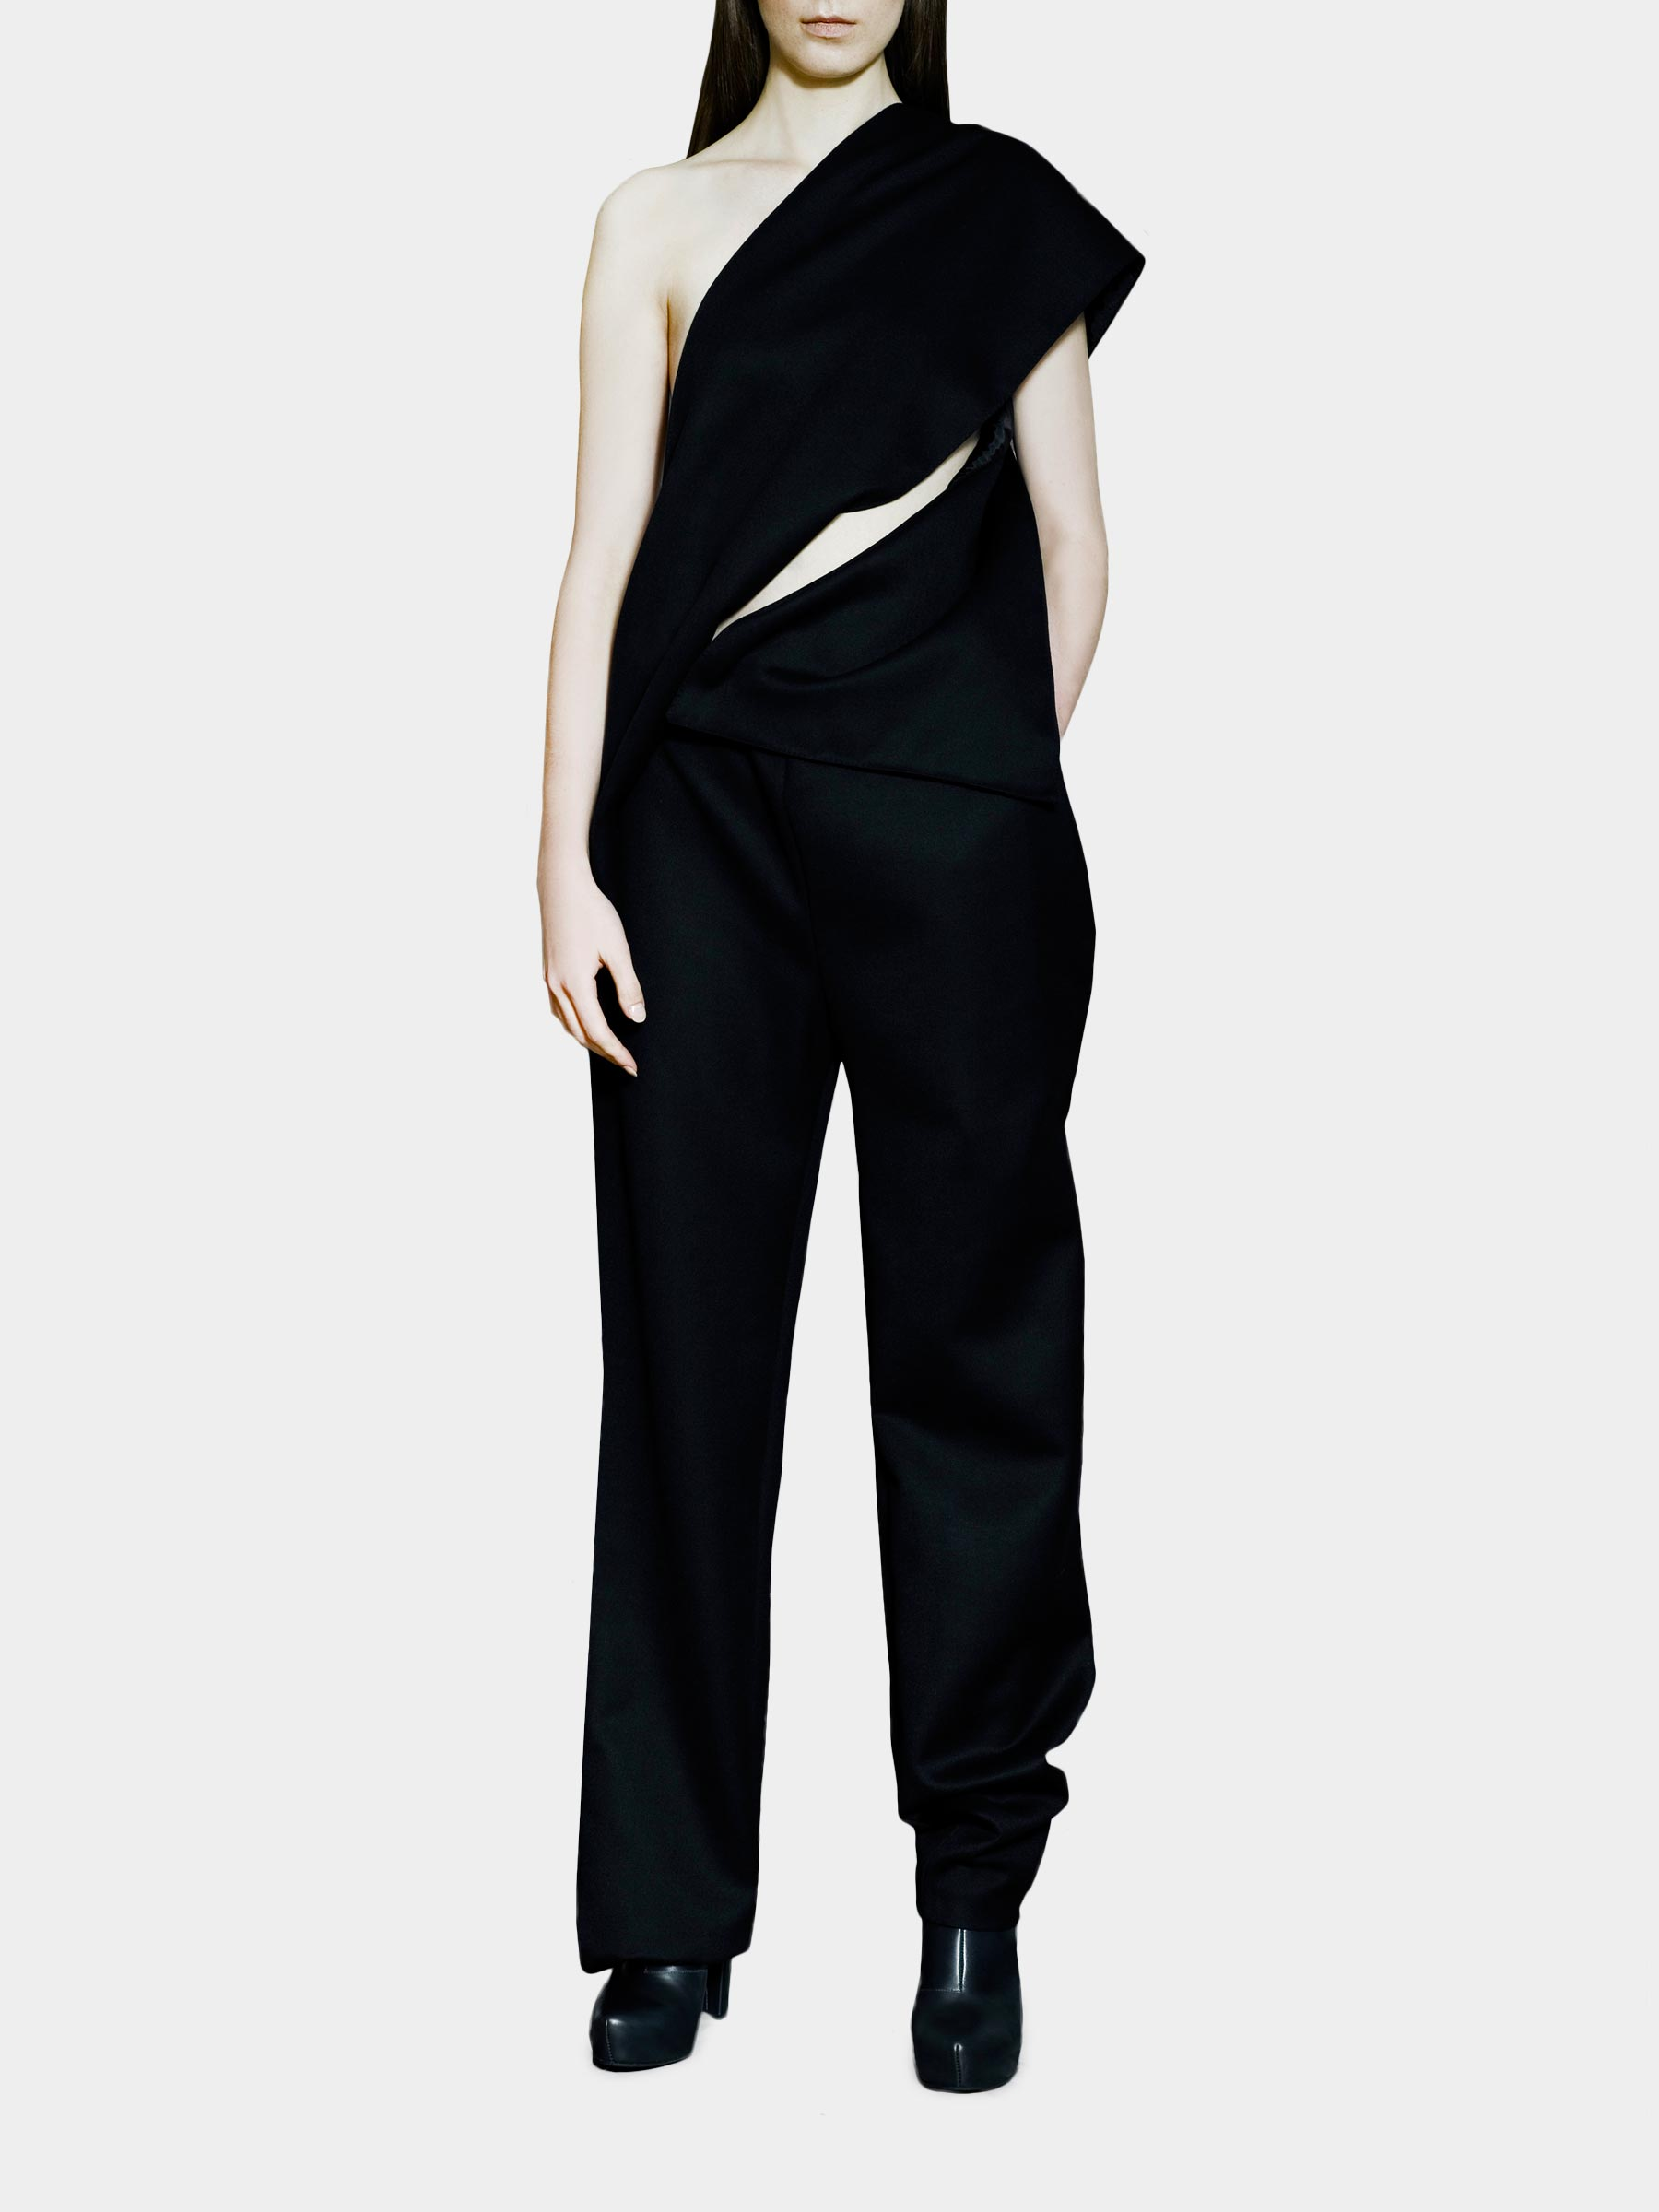 Joanna Organisciak Wool Jumpsuit - available at utopiast.com